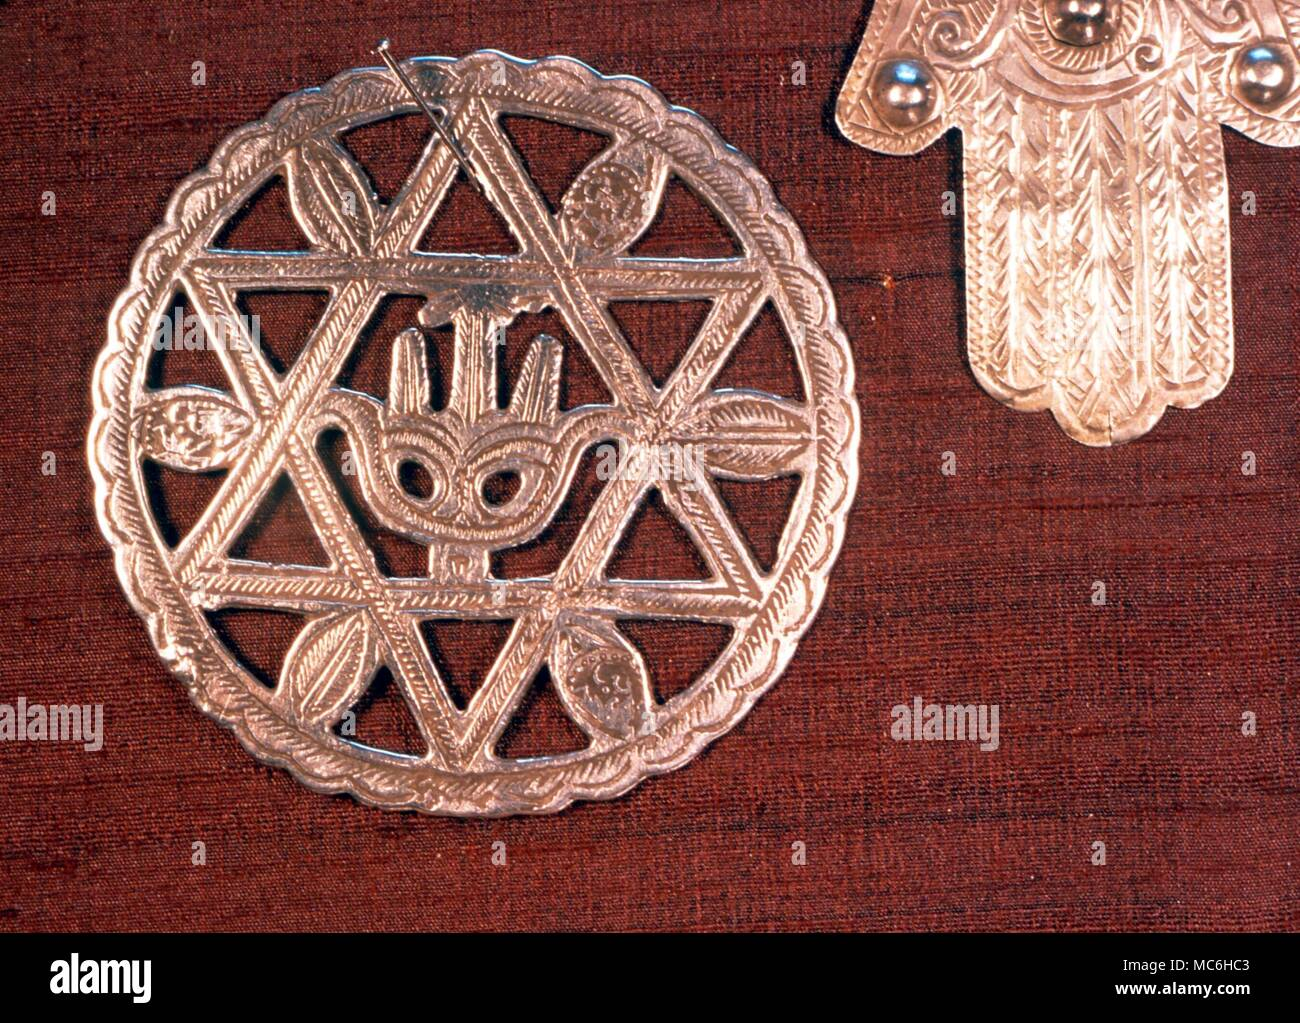 AMULETS - Pendant amulet, with central stylized 'hand of